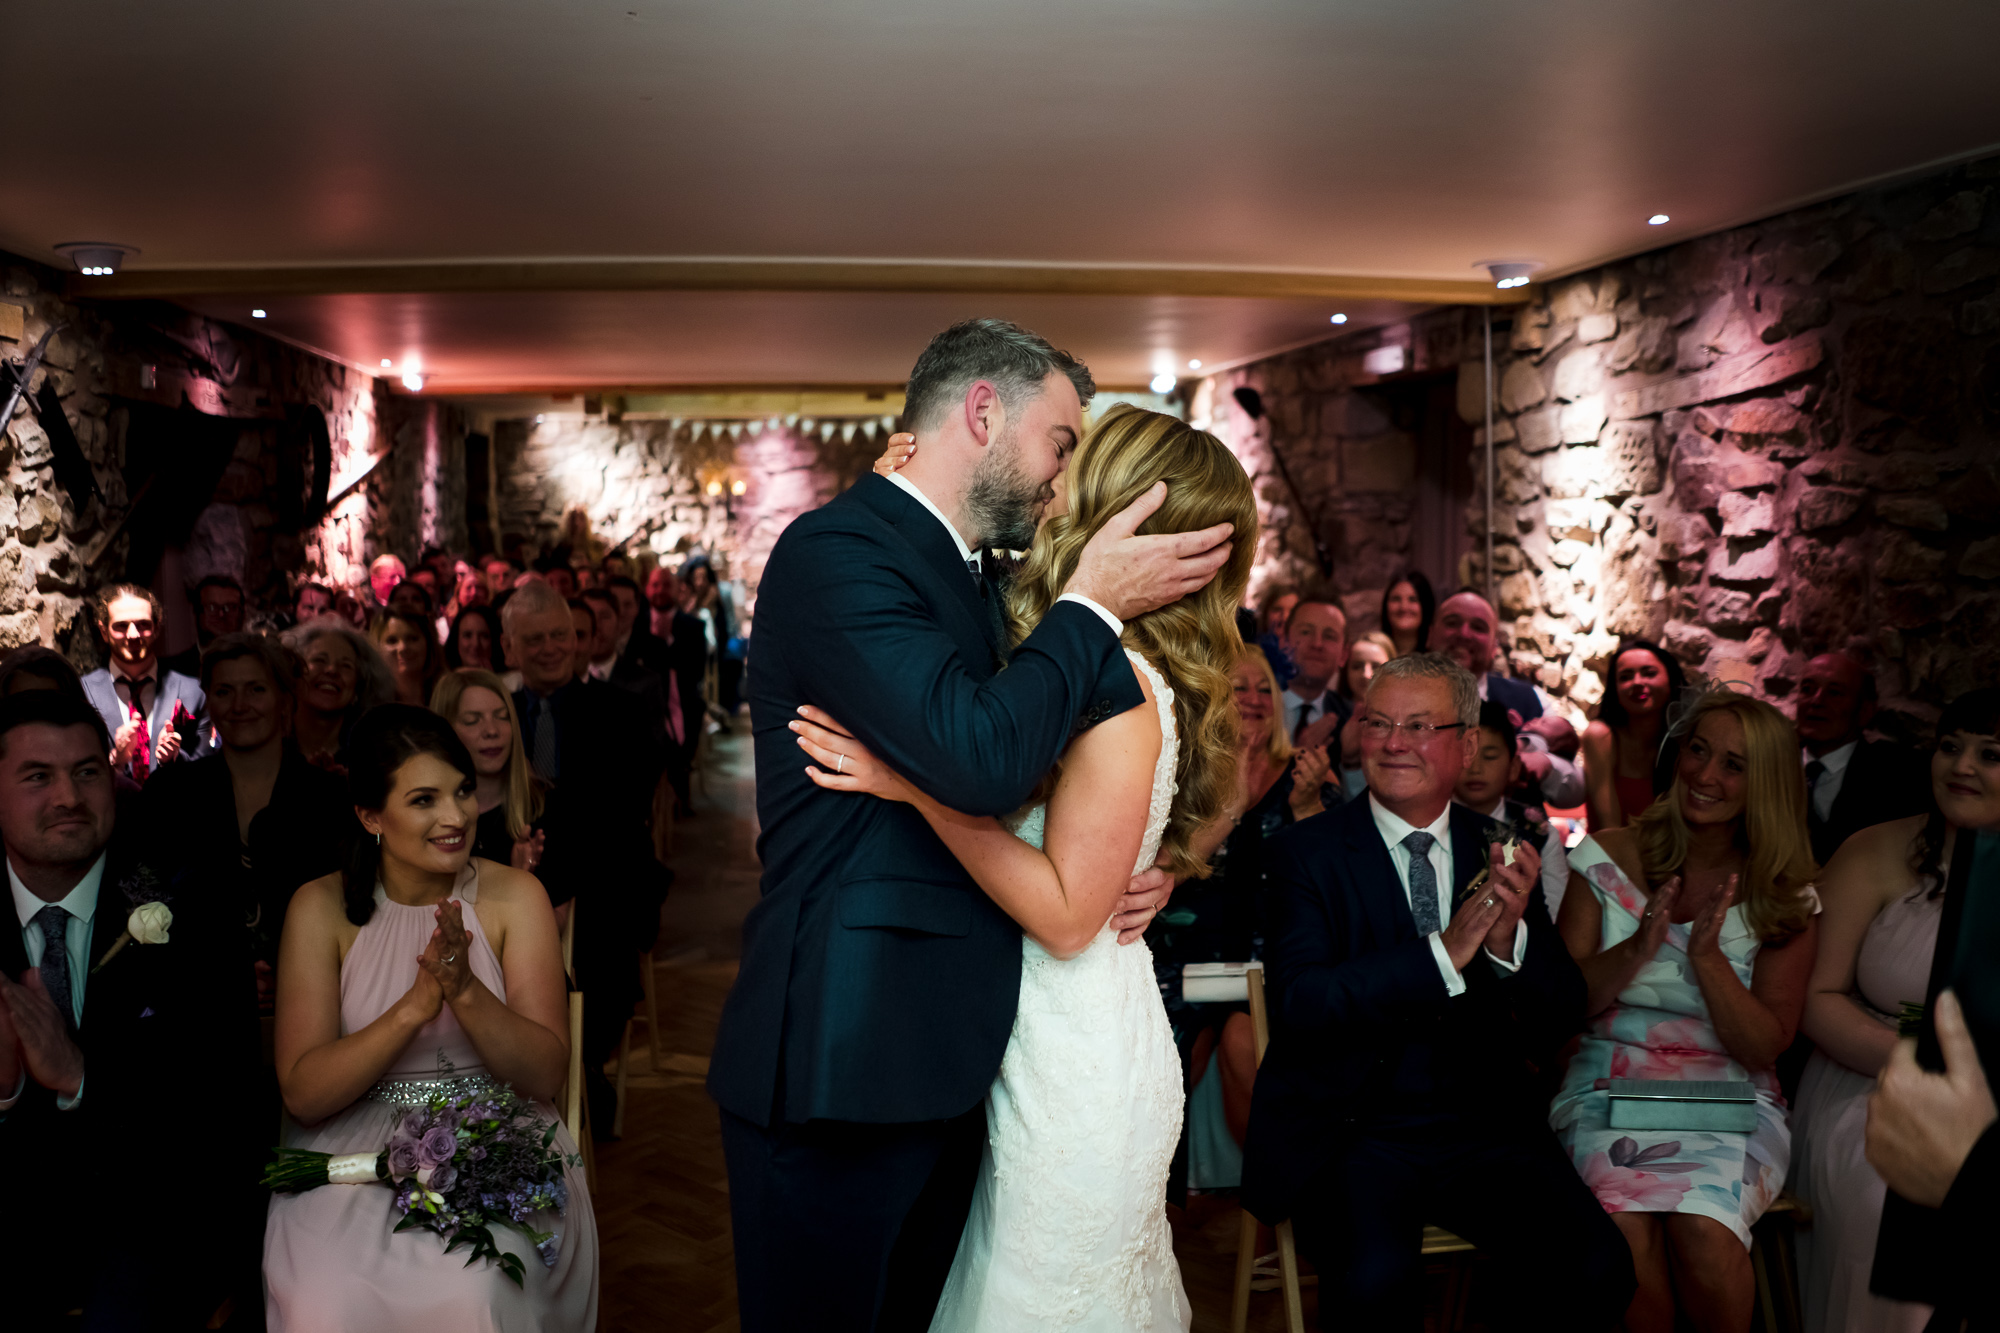 Tower Hill BArn Wedding Photographer based in north west england (23 of 35).jpg